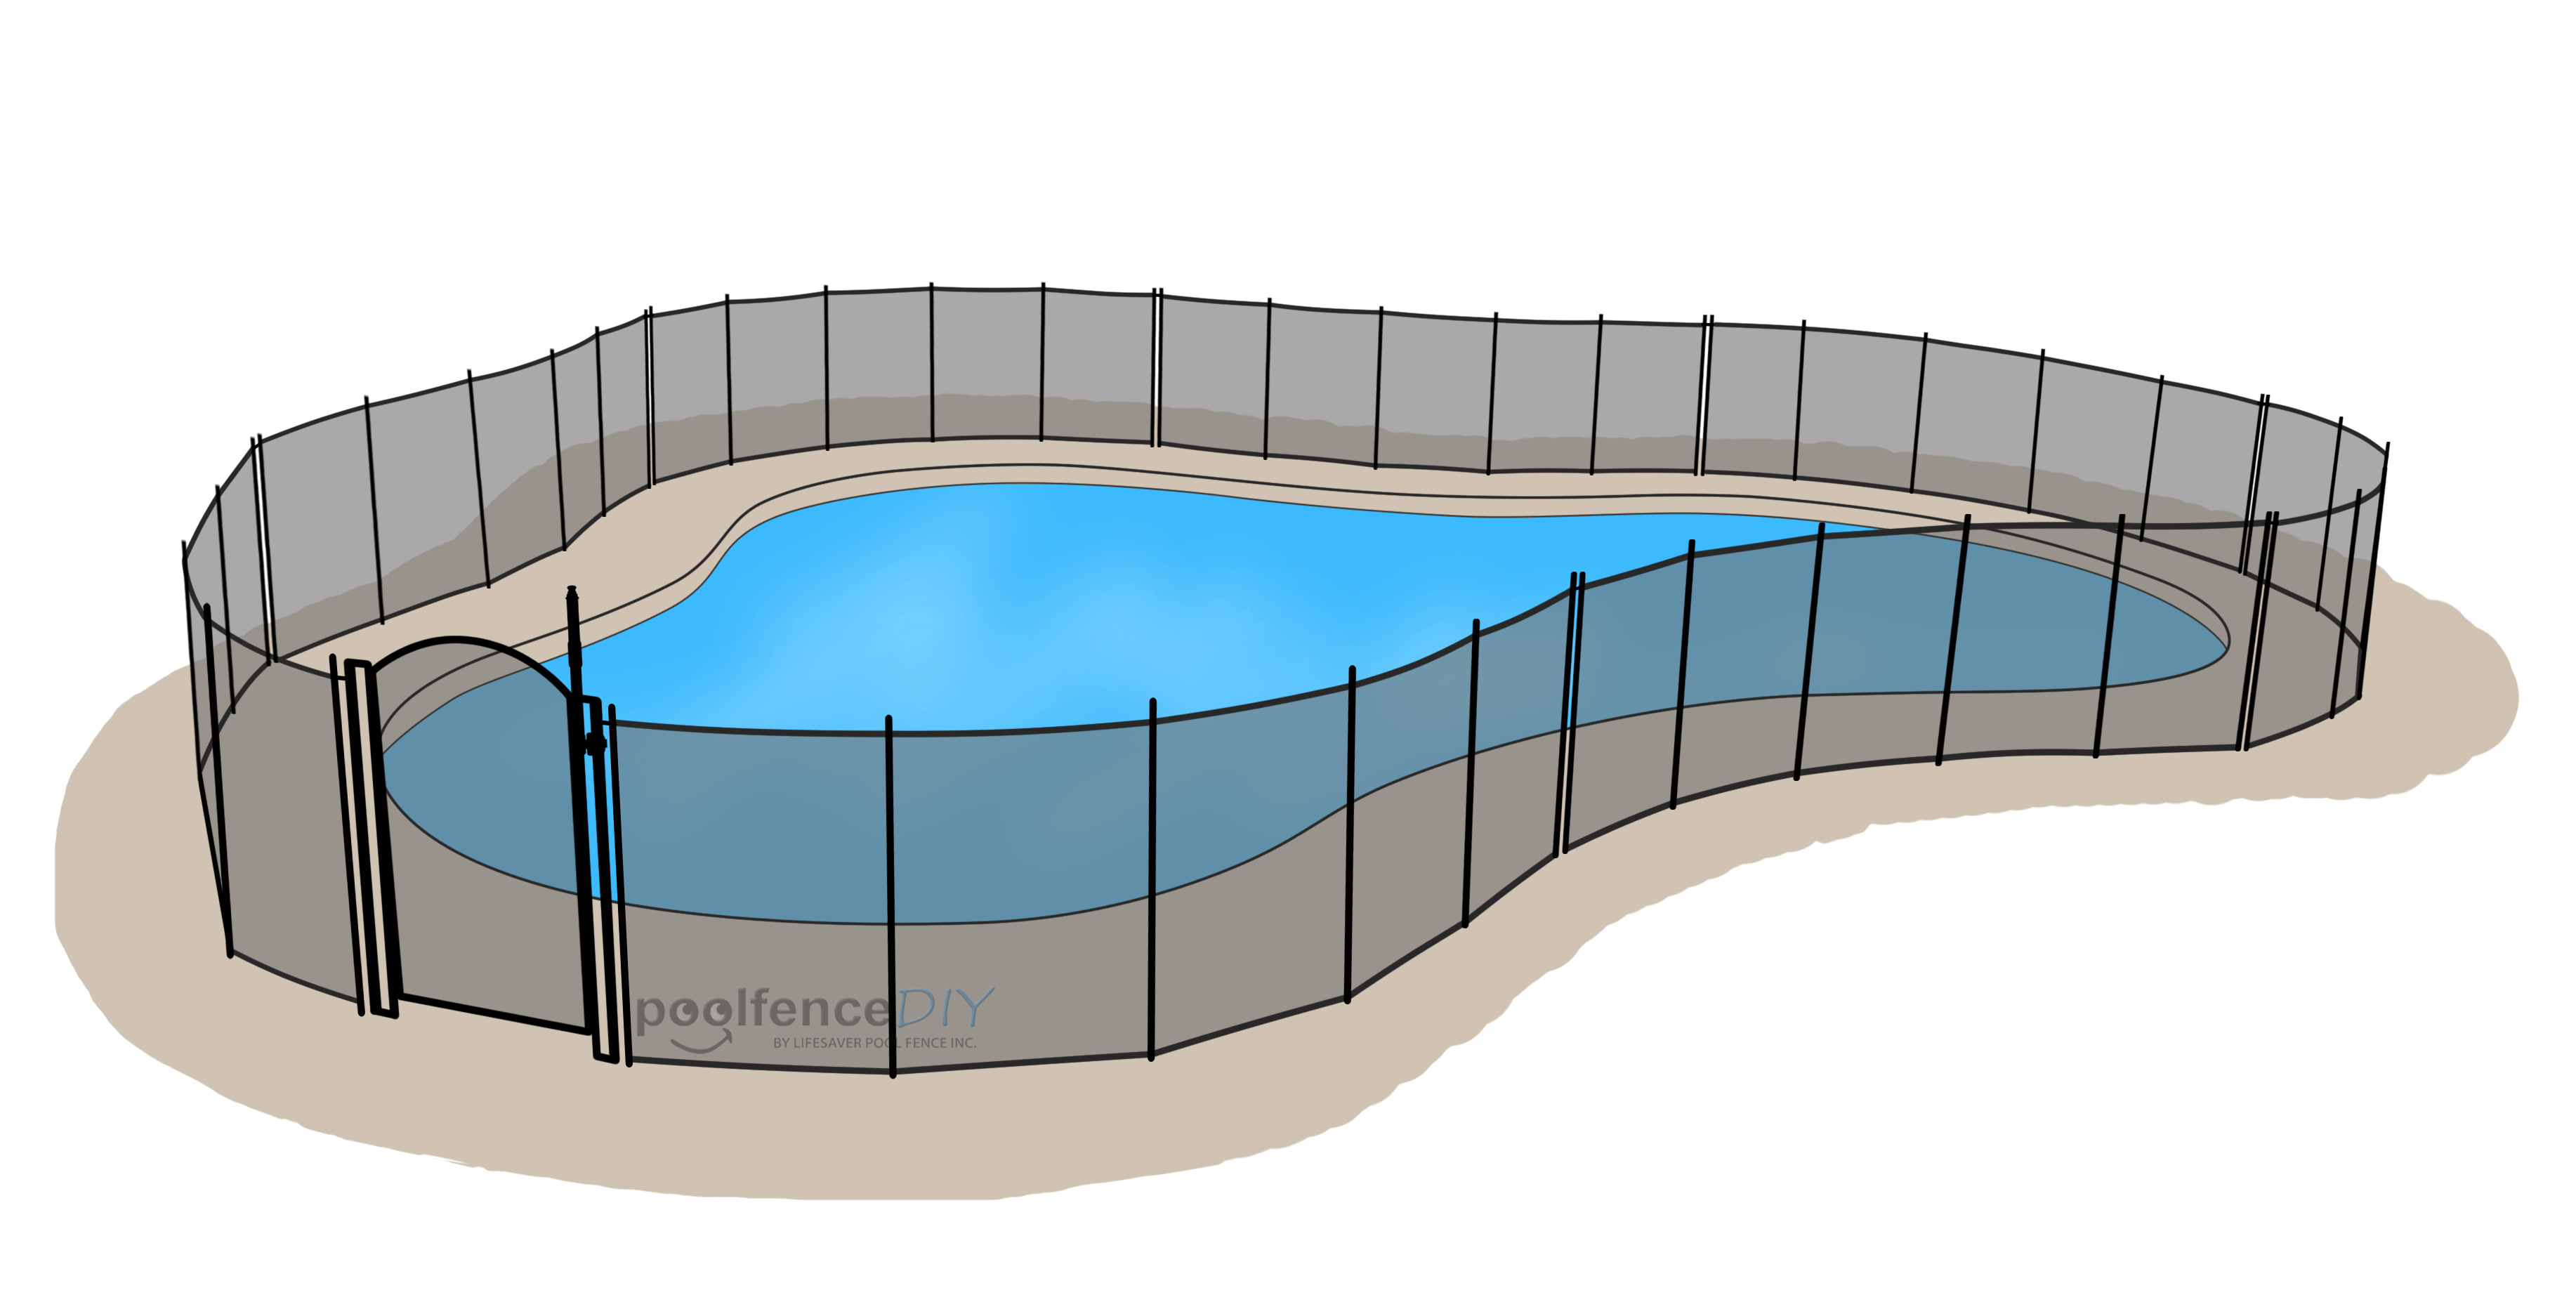 Pool Fence DIY | Do It Yourself Pool Fencing Made Easy